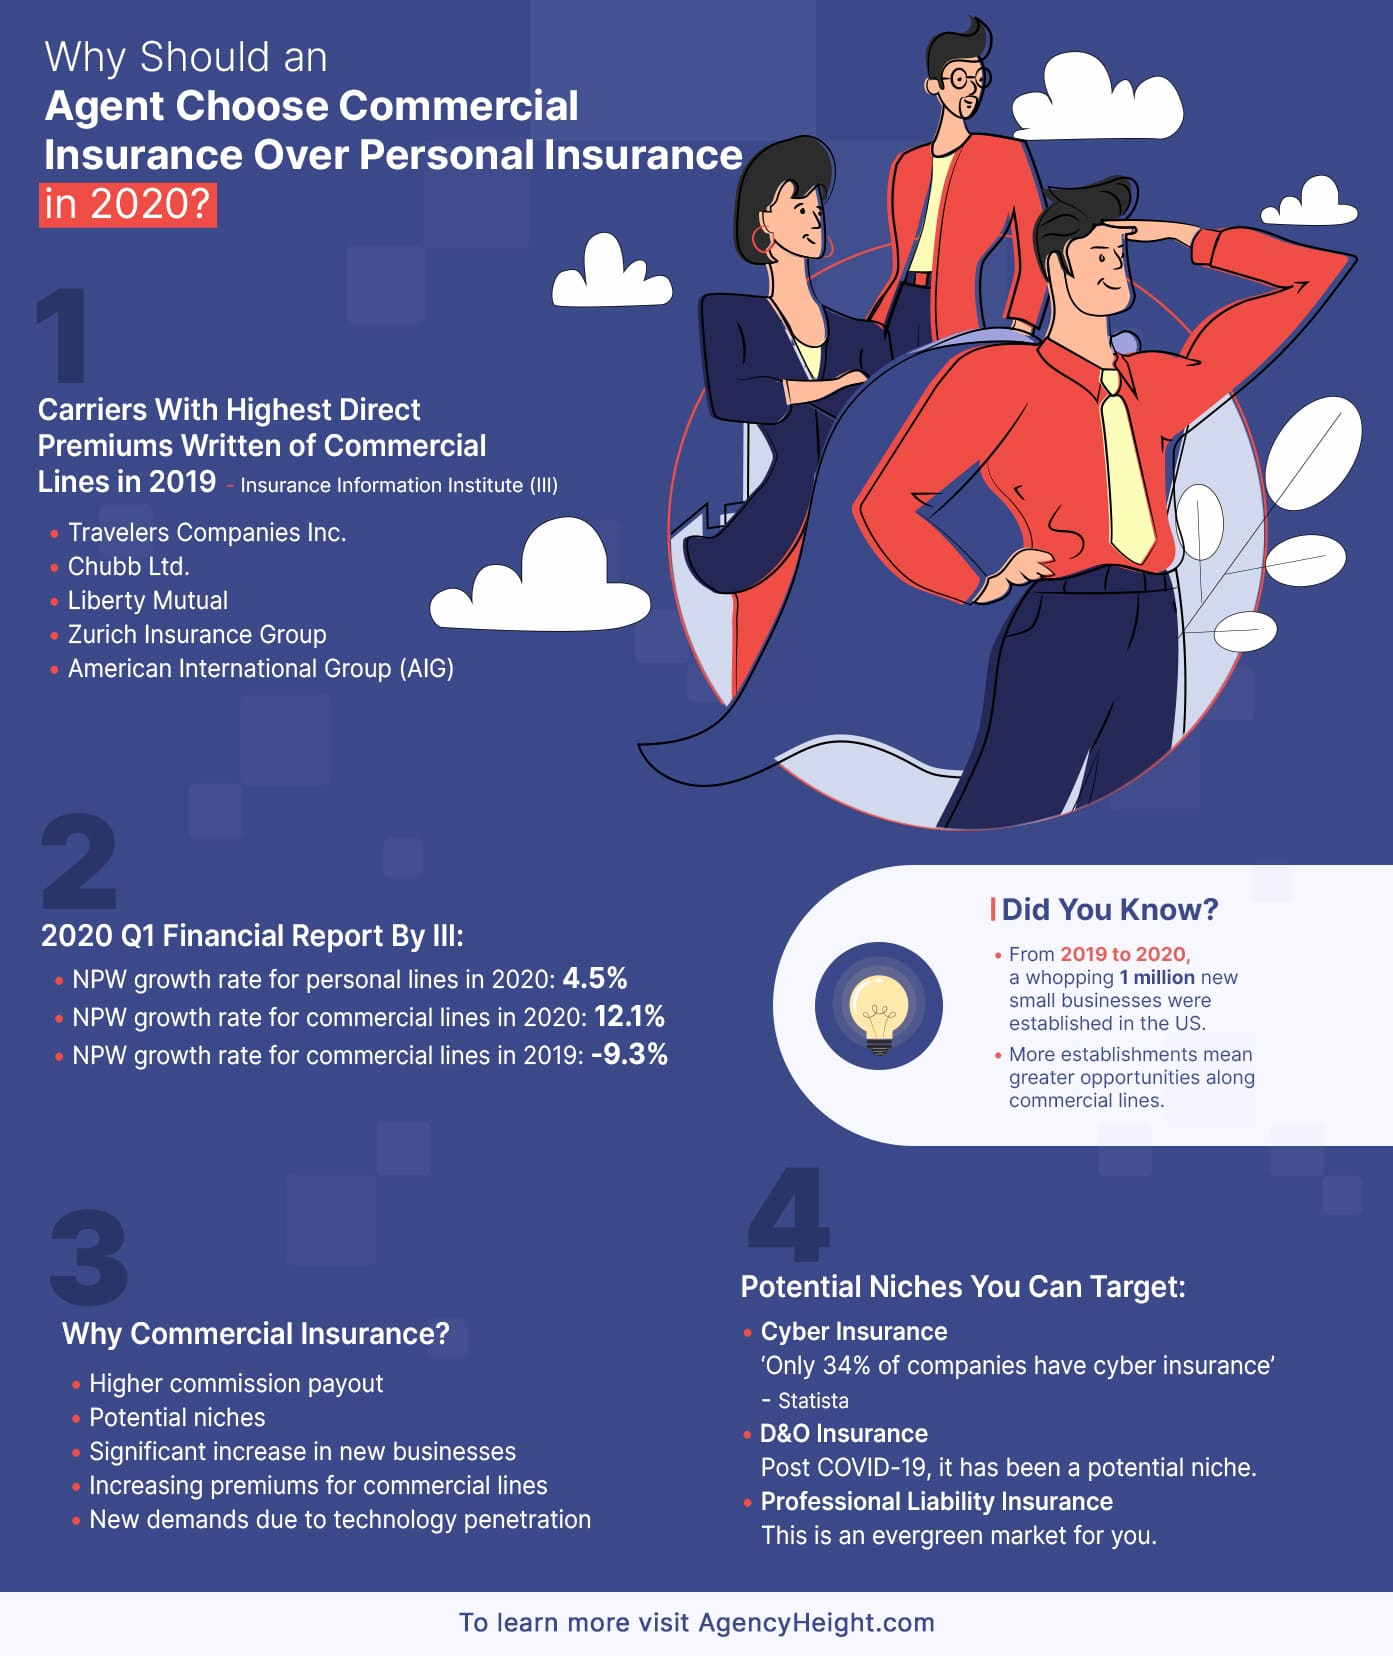 Why Should an Agent Choose Commercial Insurance Over Personal Insurance in 2020 infographic